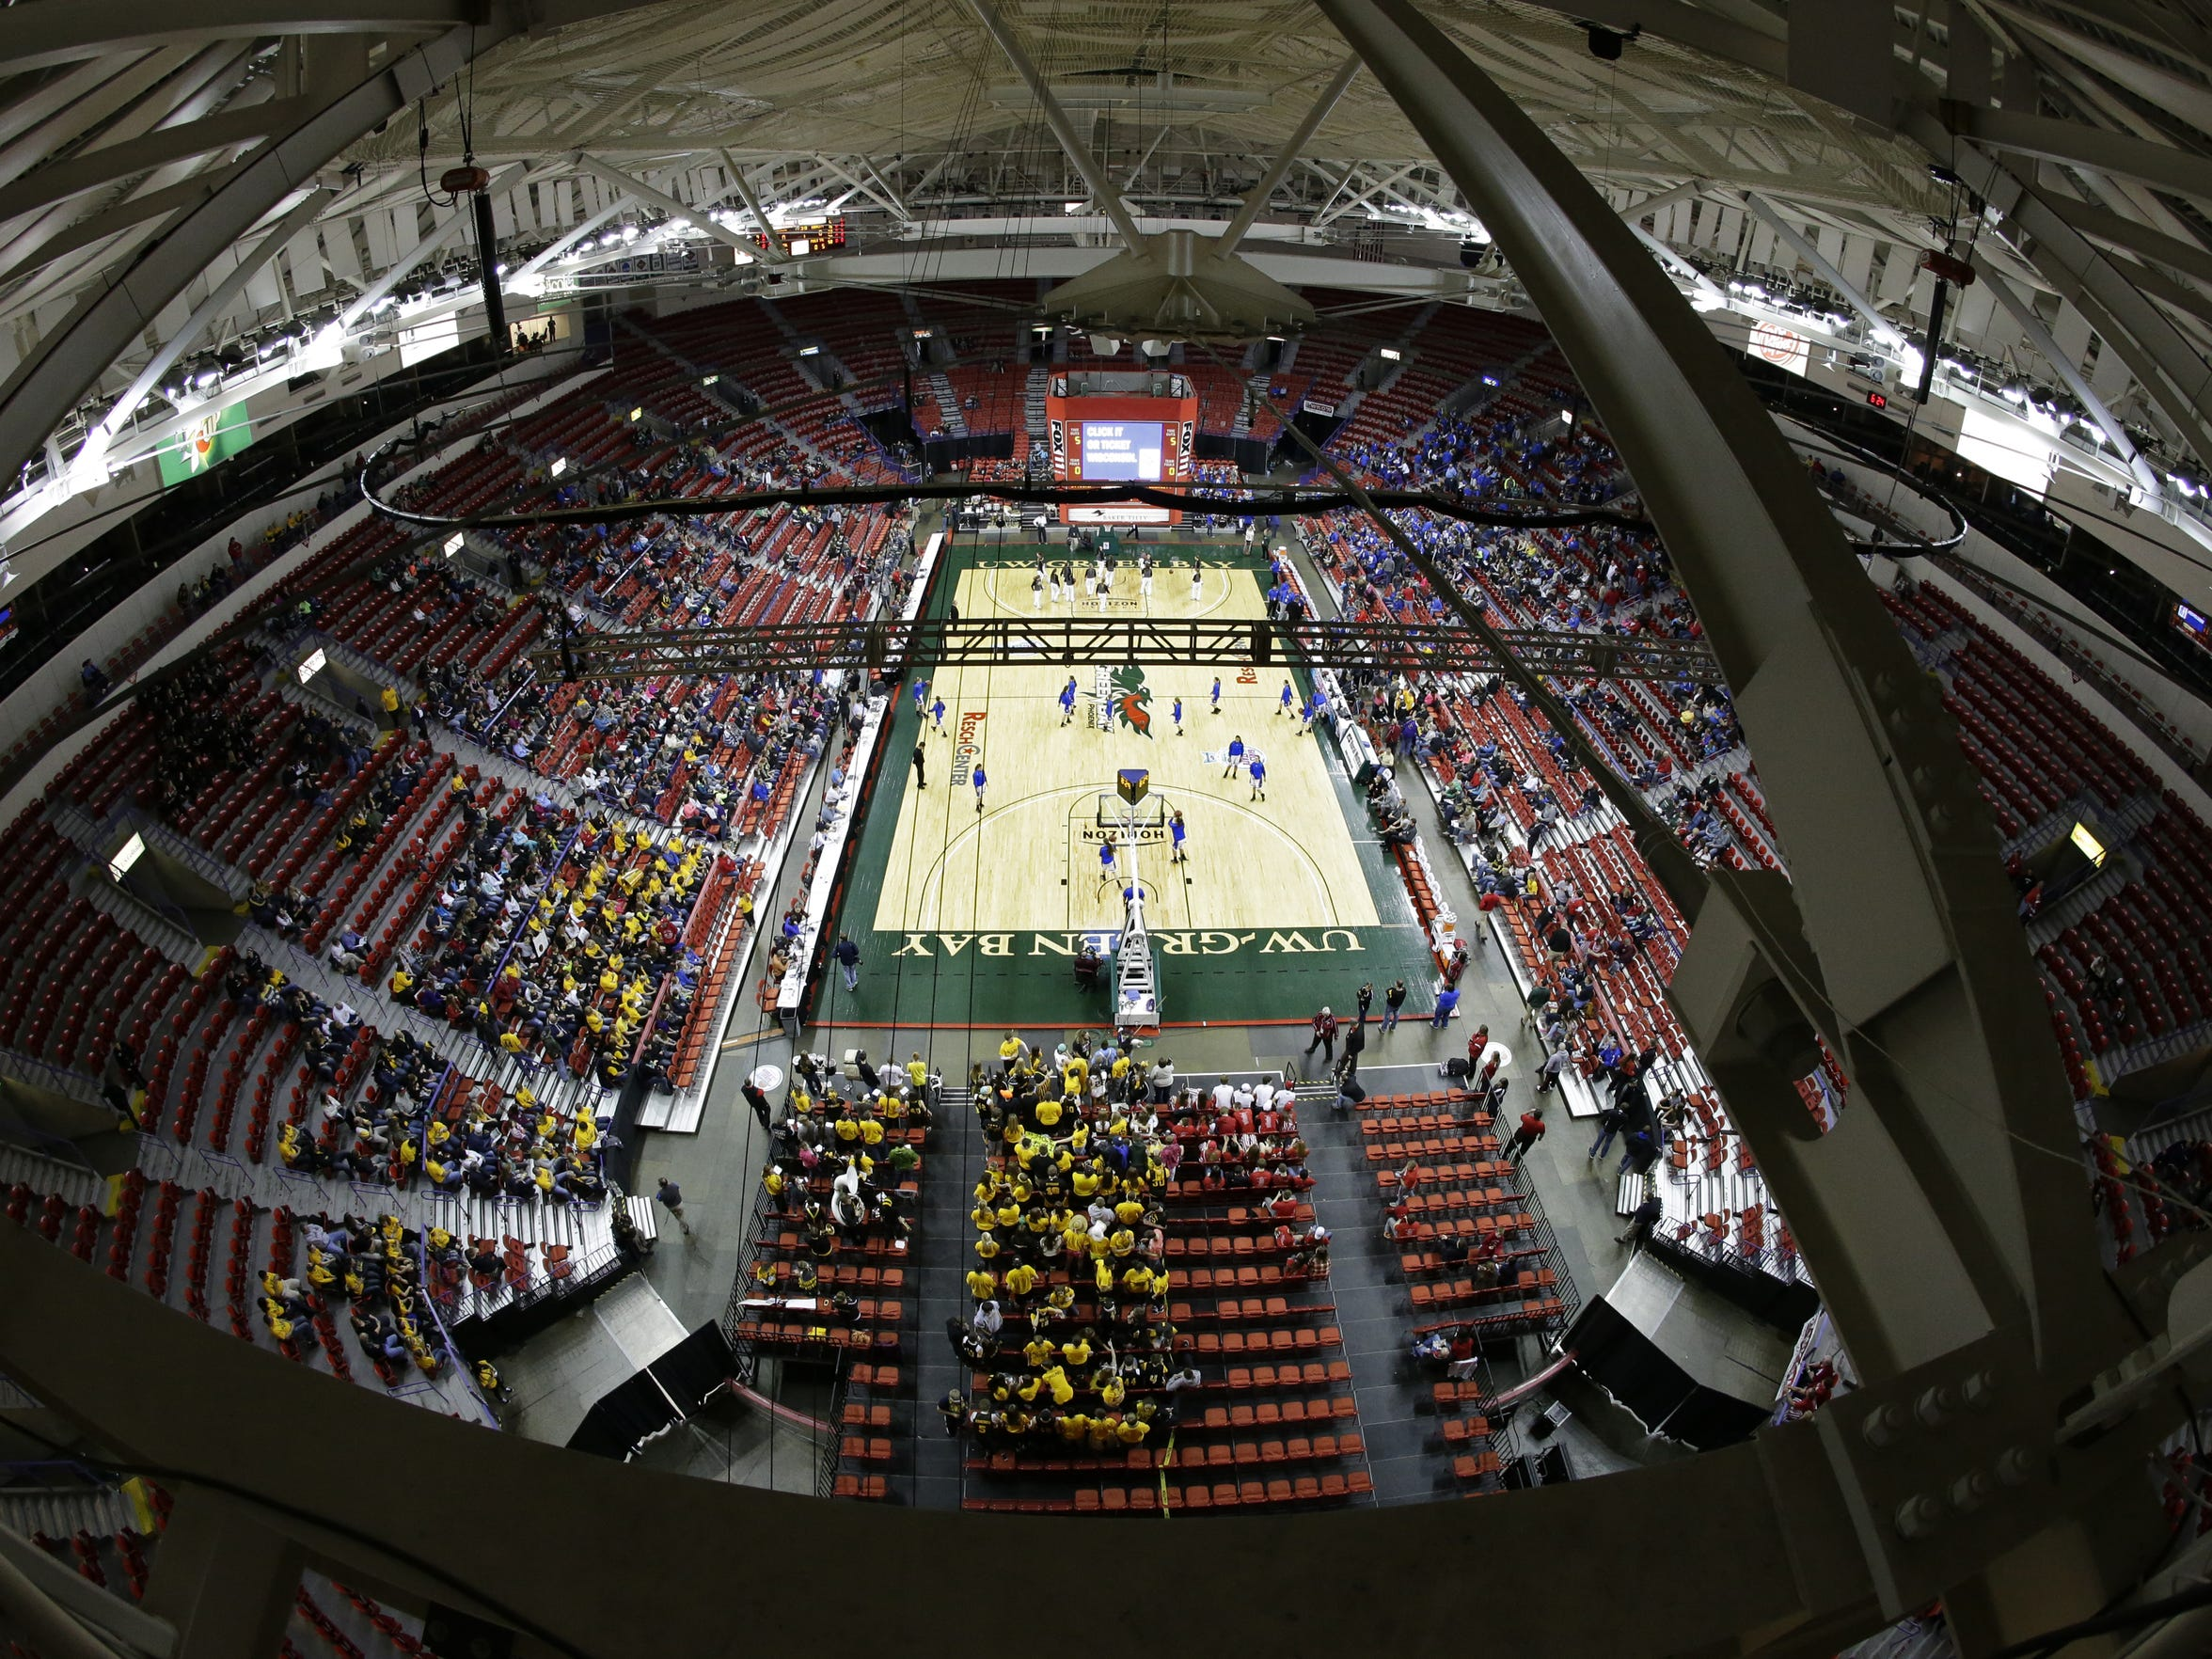 A view from the Resch Center rafters of the 2015 WIAA state girls basketball tournament in Ashwaubenon.